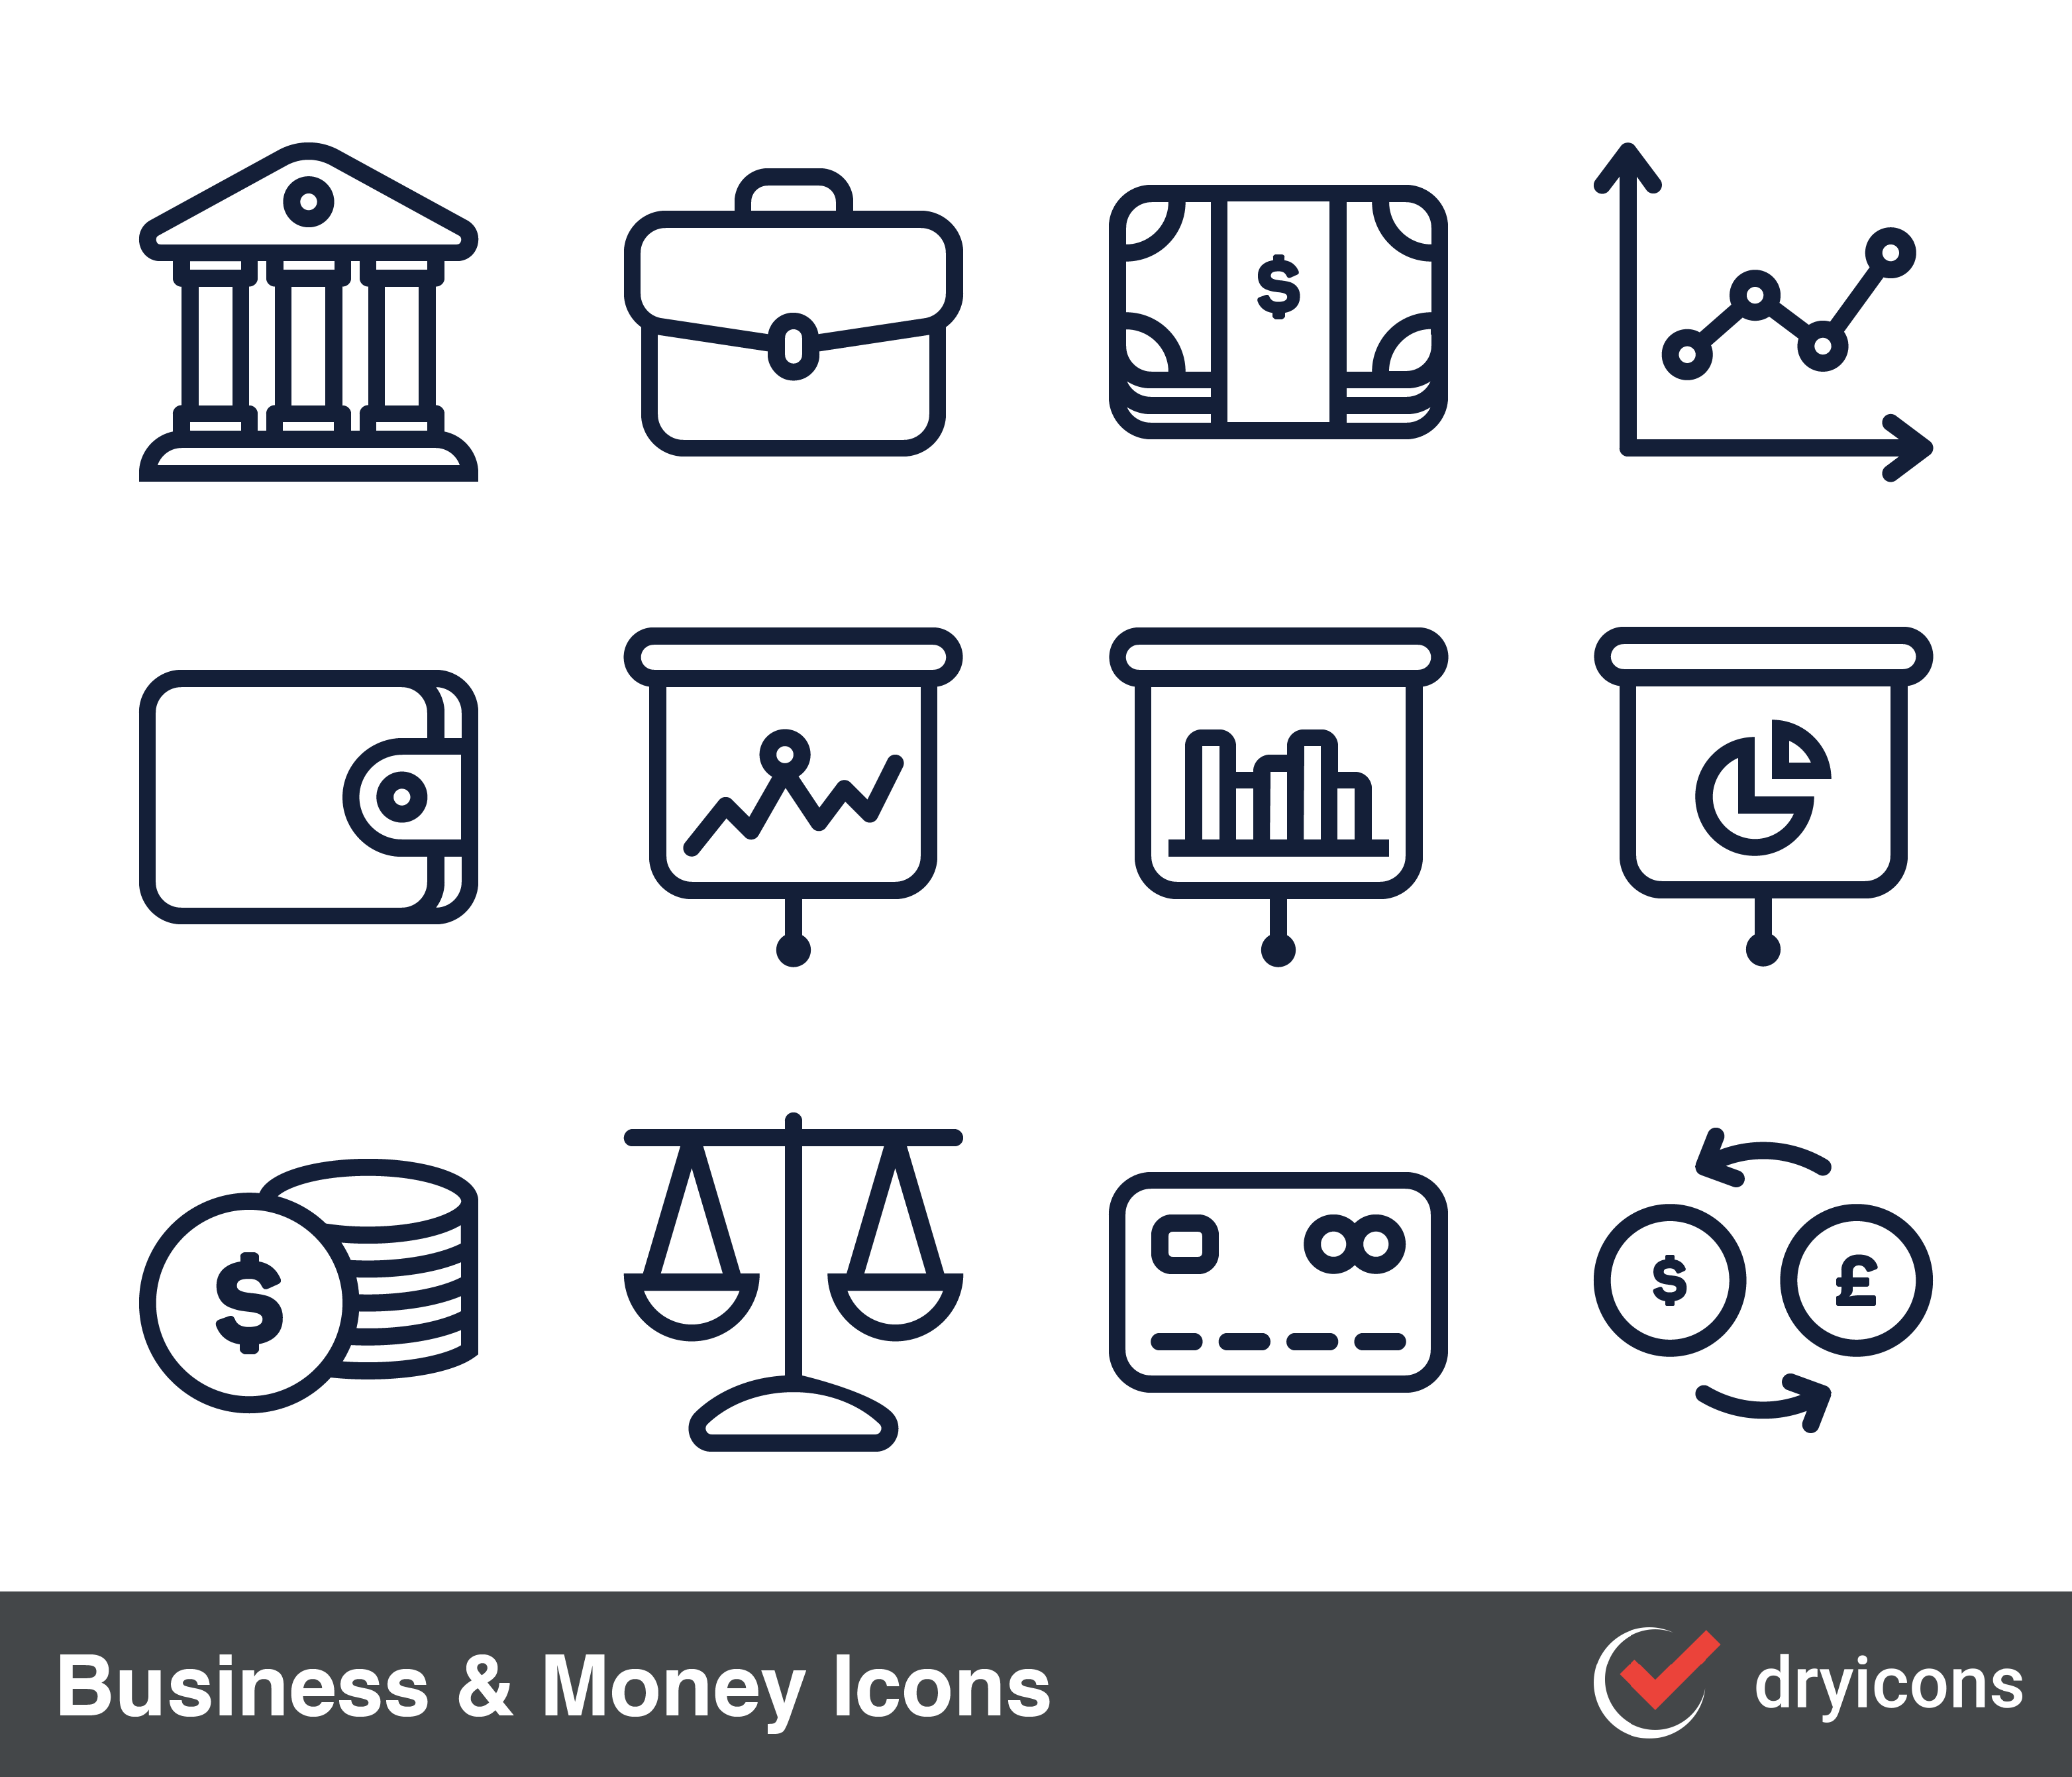 Stamp clipart square. Dryicons com icons and